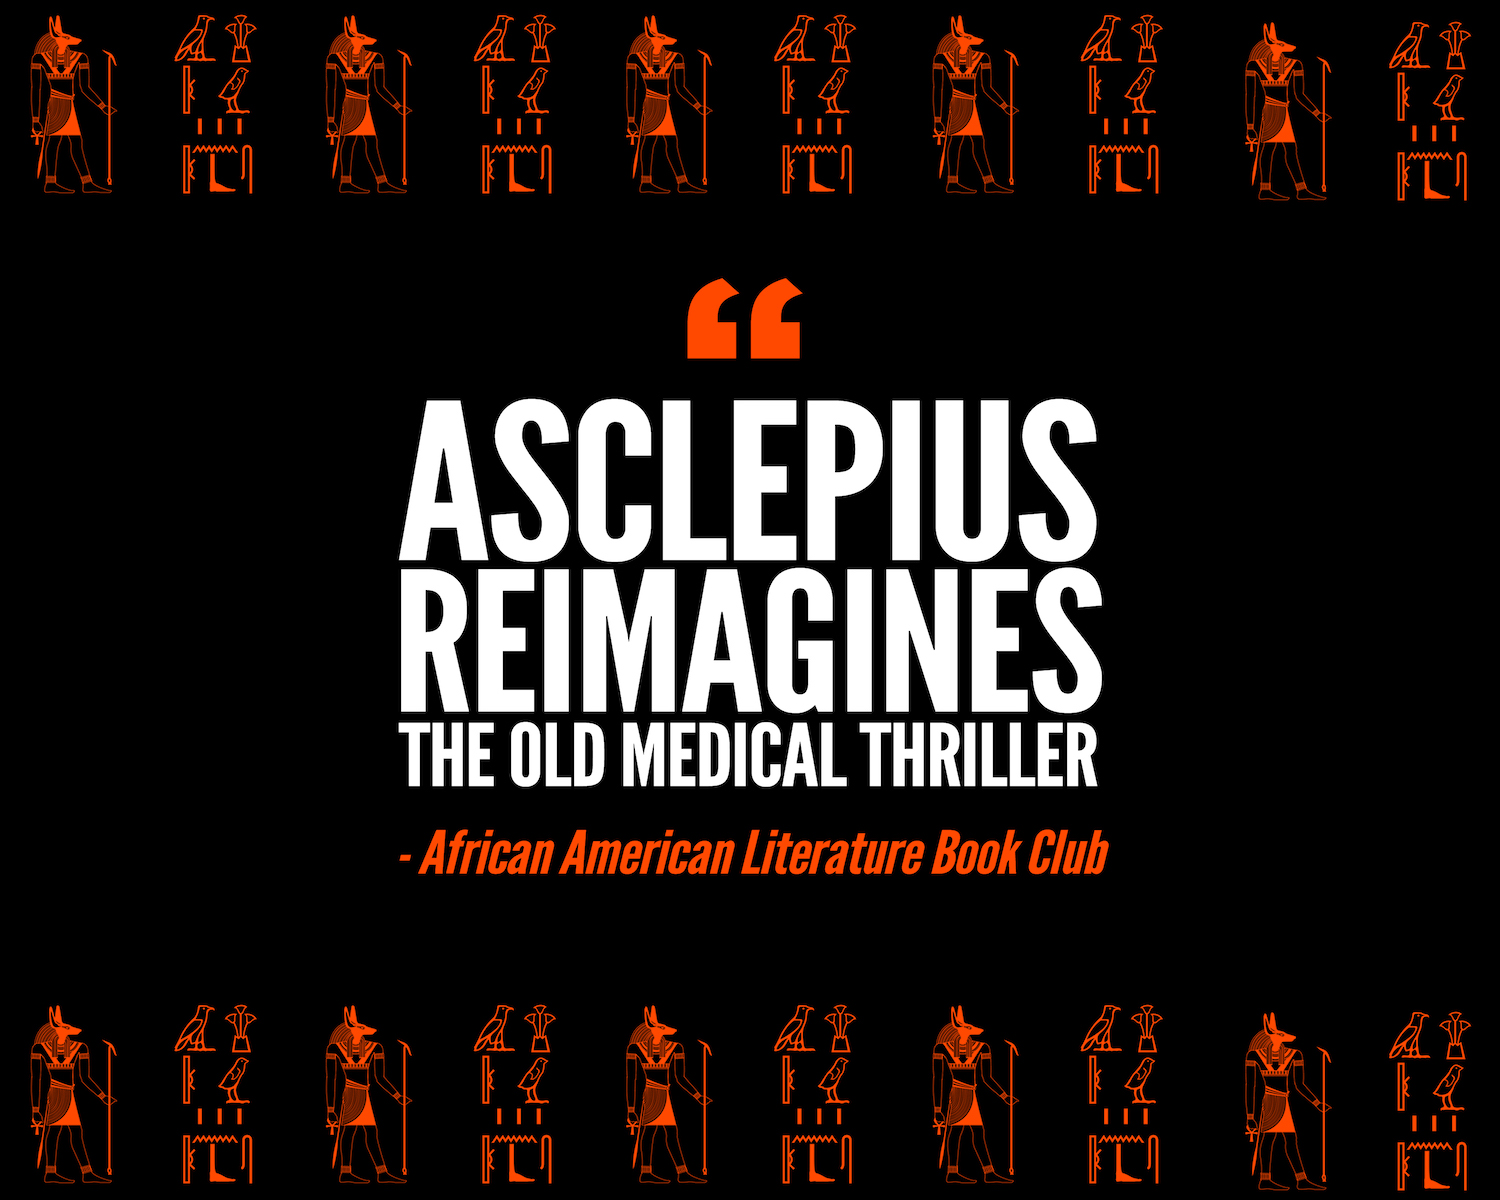 ASCLEPIUS Book Review by African American Literature Book Club